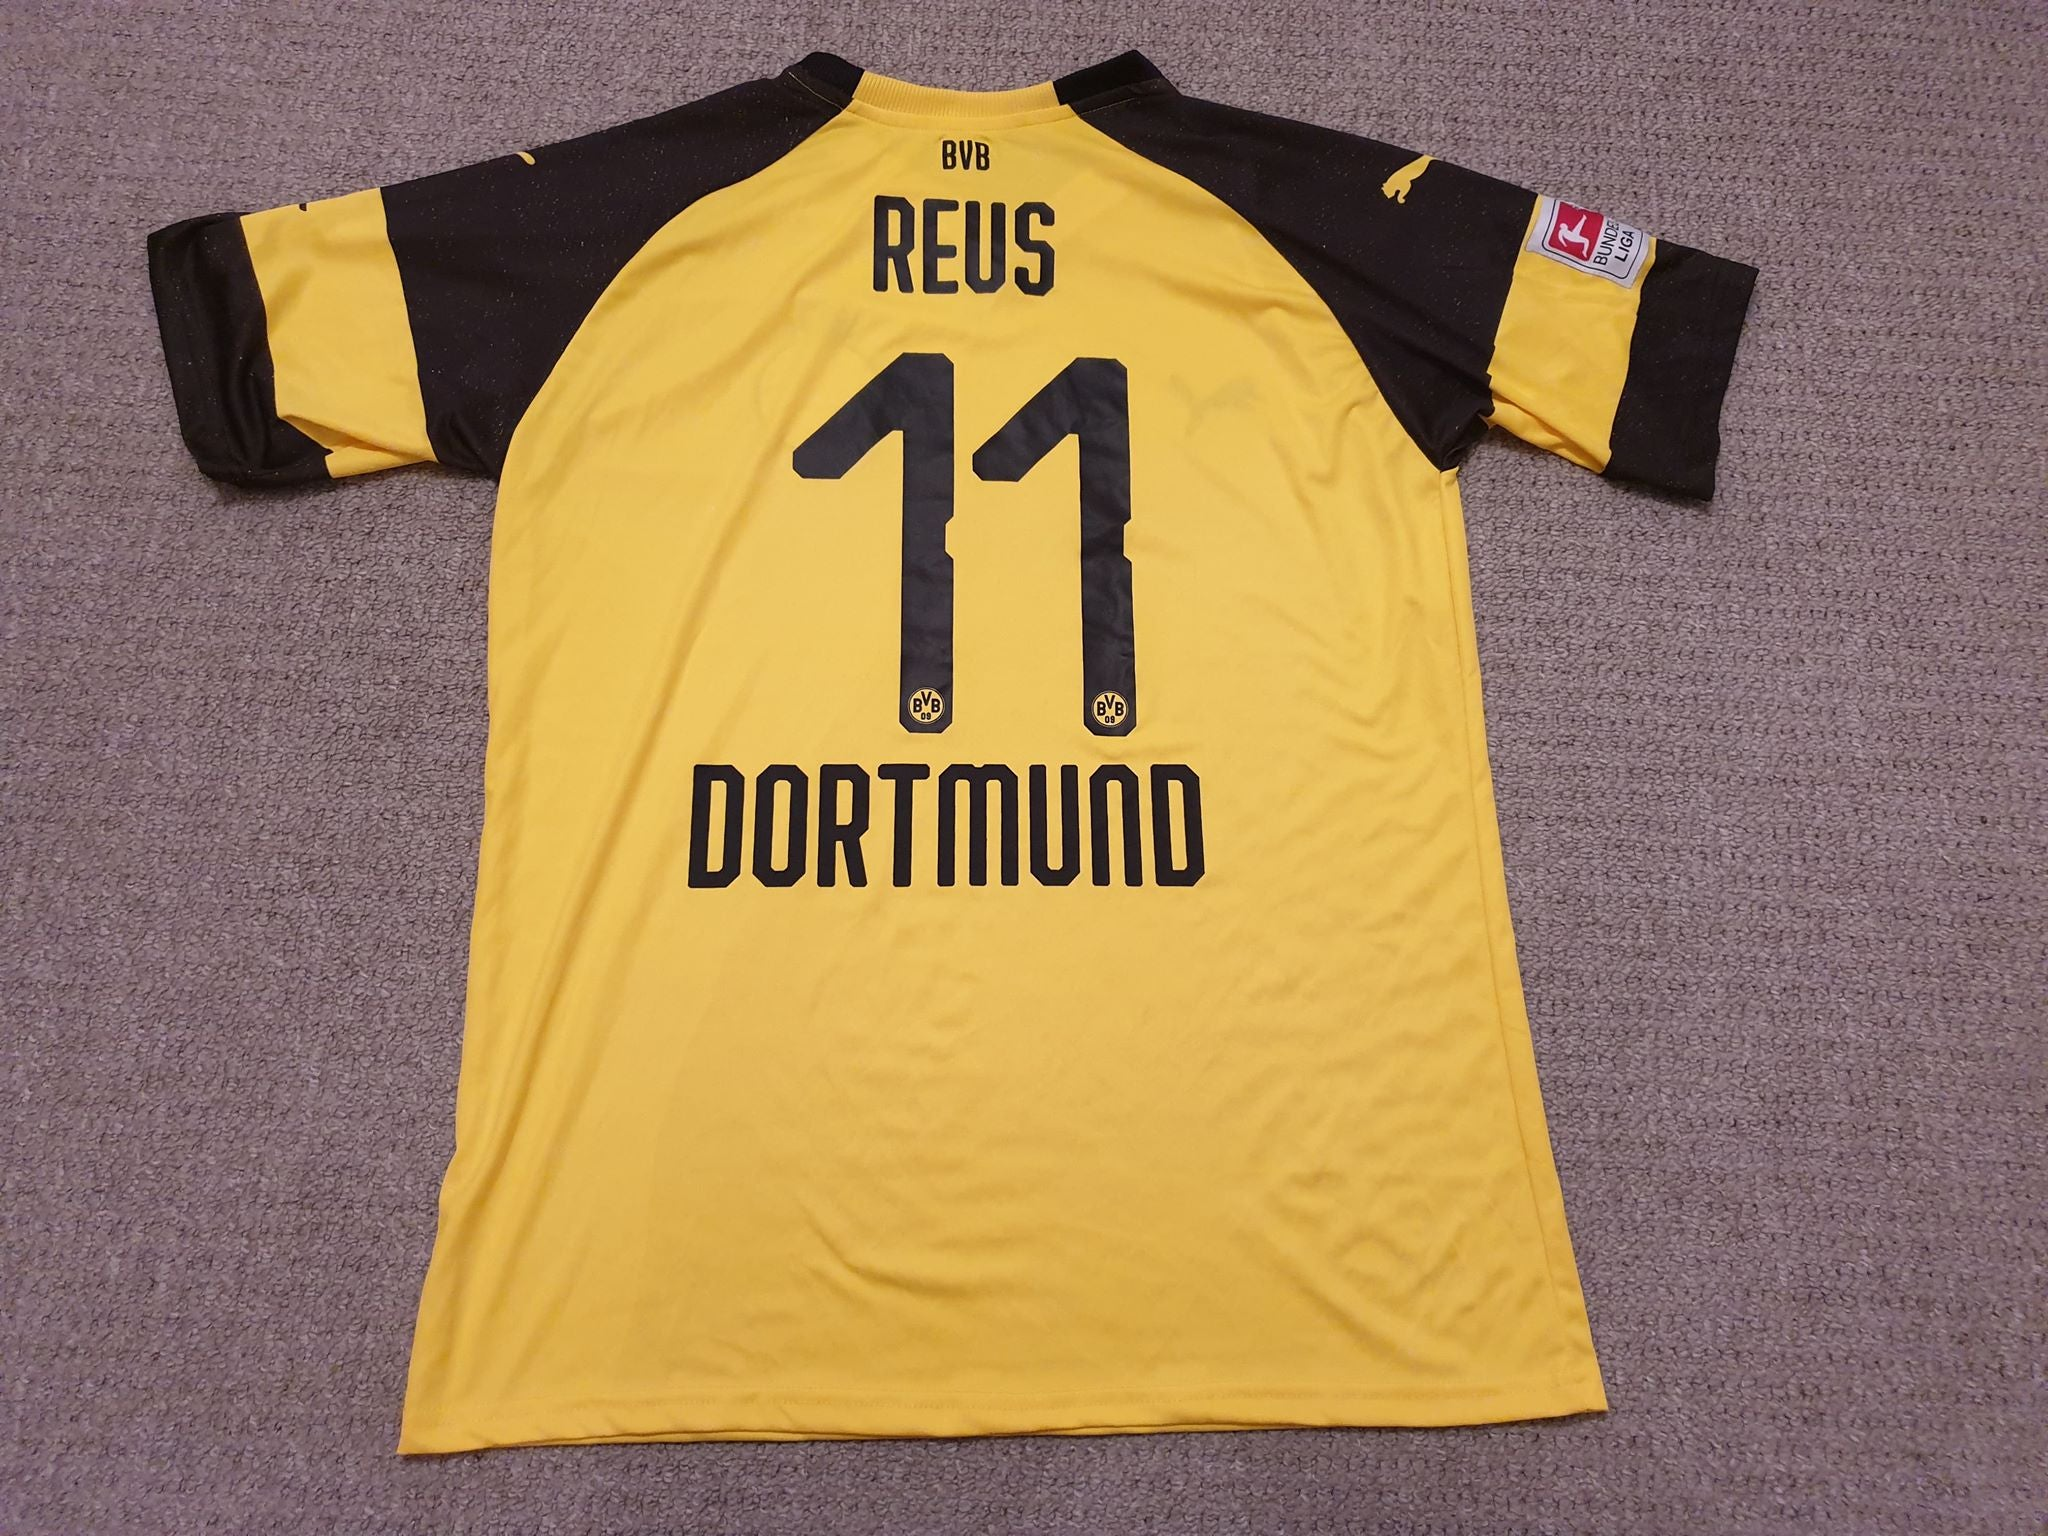 Borussia Dortmund Home Shirt 2018 19 11 Reus Football Mad Memorabilia